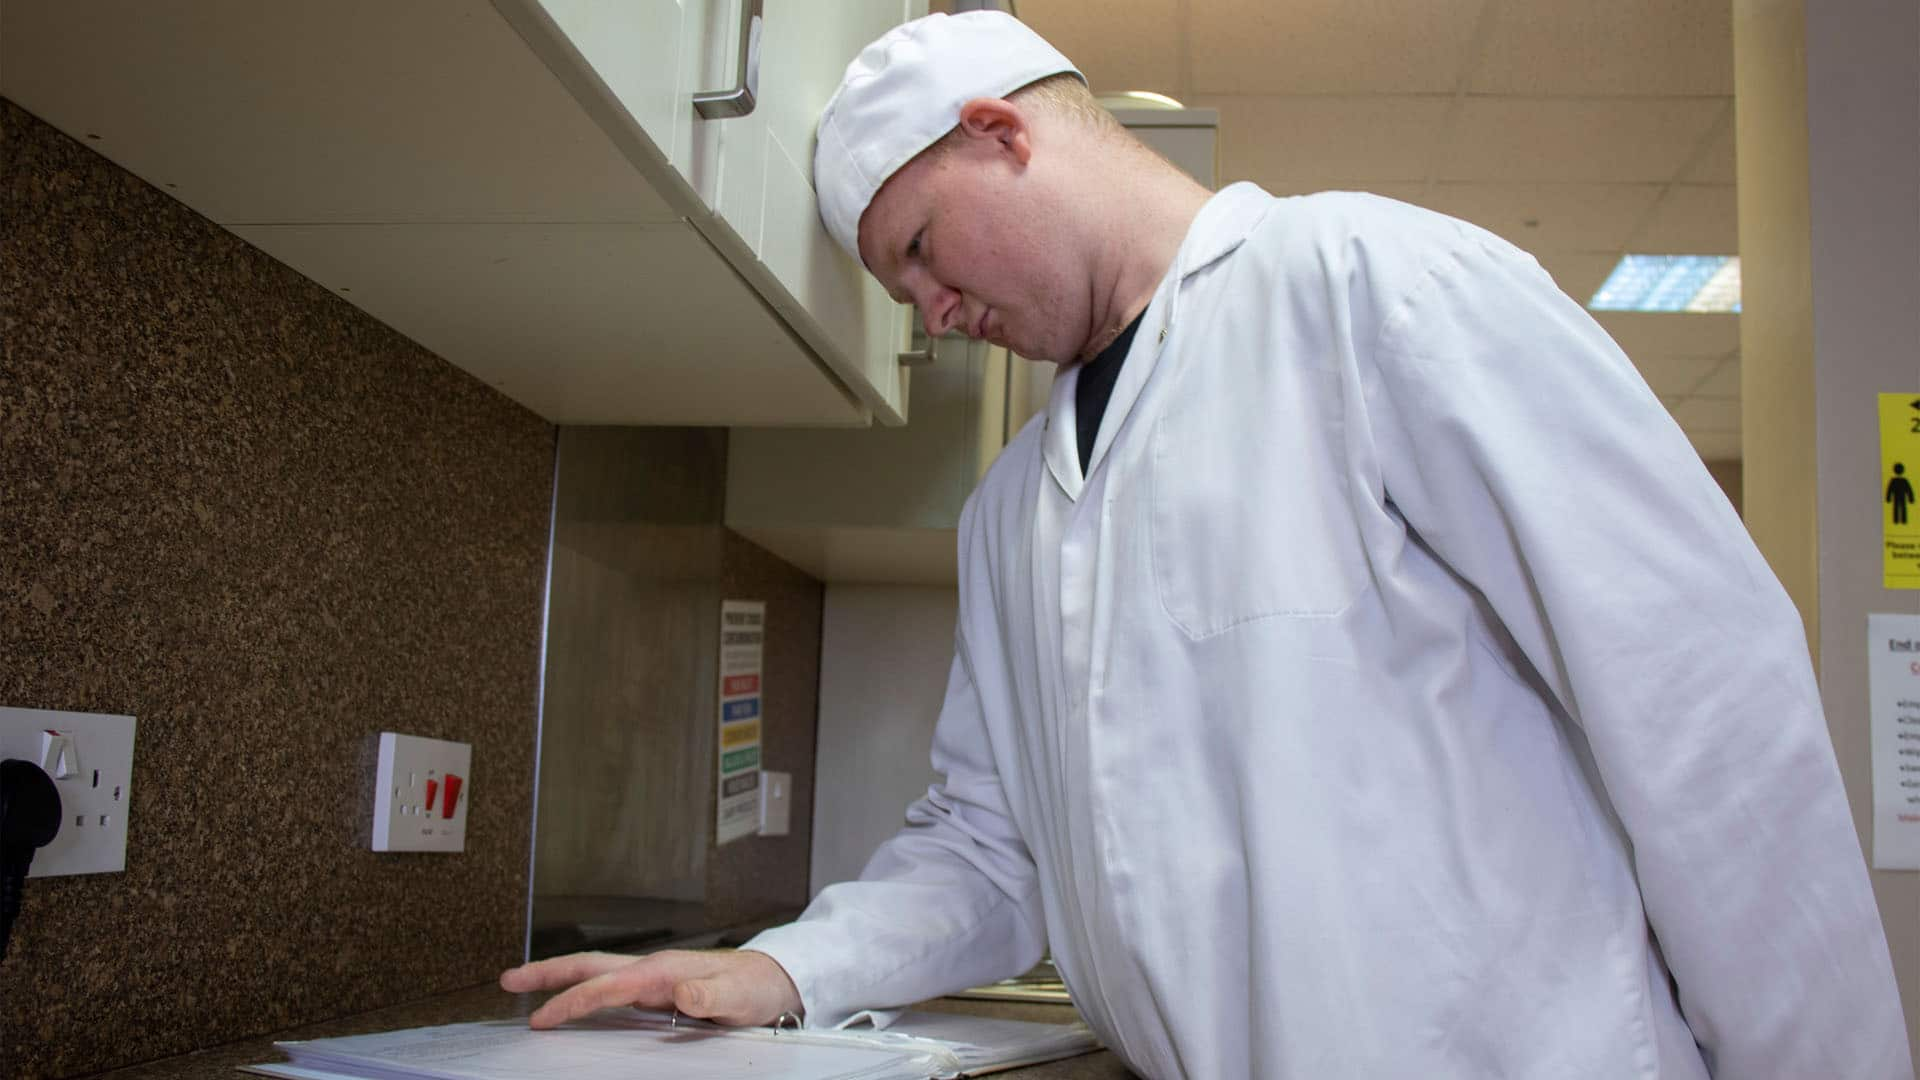 A service user reading some instructions in the Magpies' kitchen